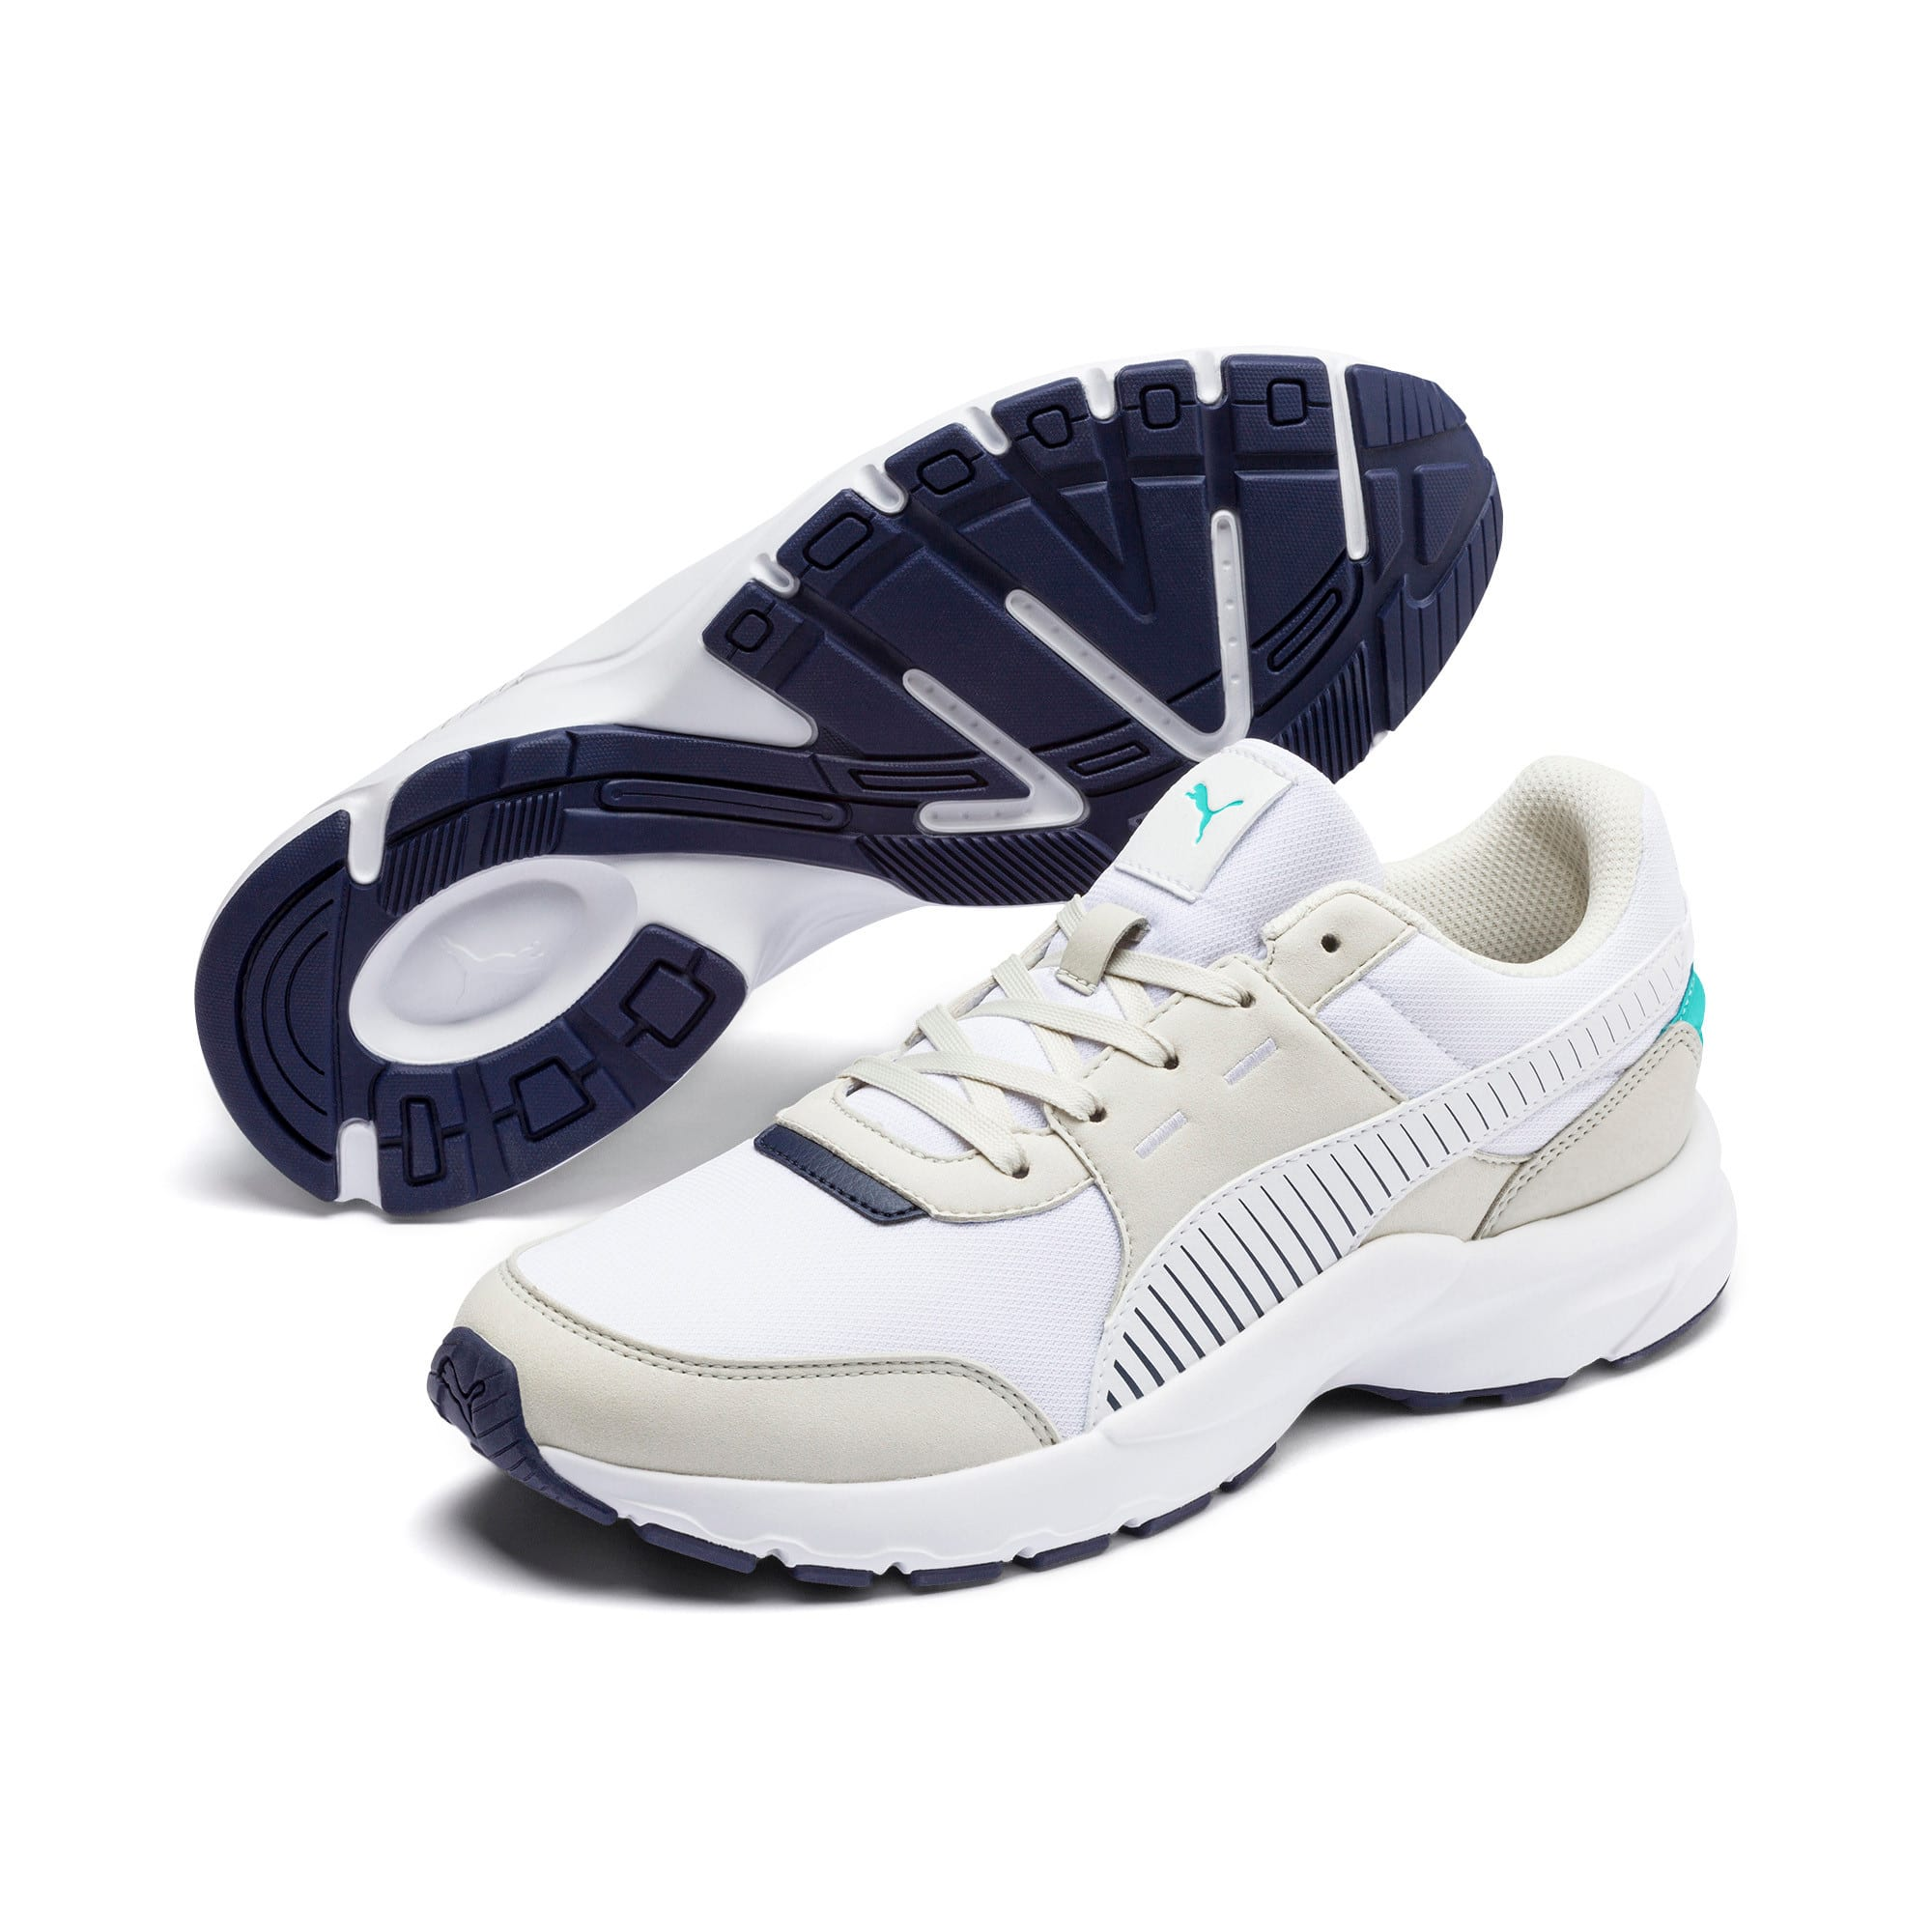 Thumbnail 3 of Future Runner Running Shoes, Wht-G Gray-Peacoat-Turquoise, medium